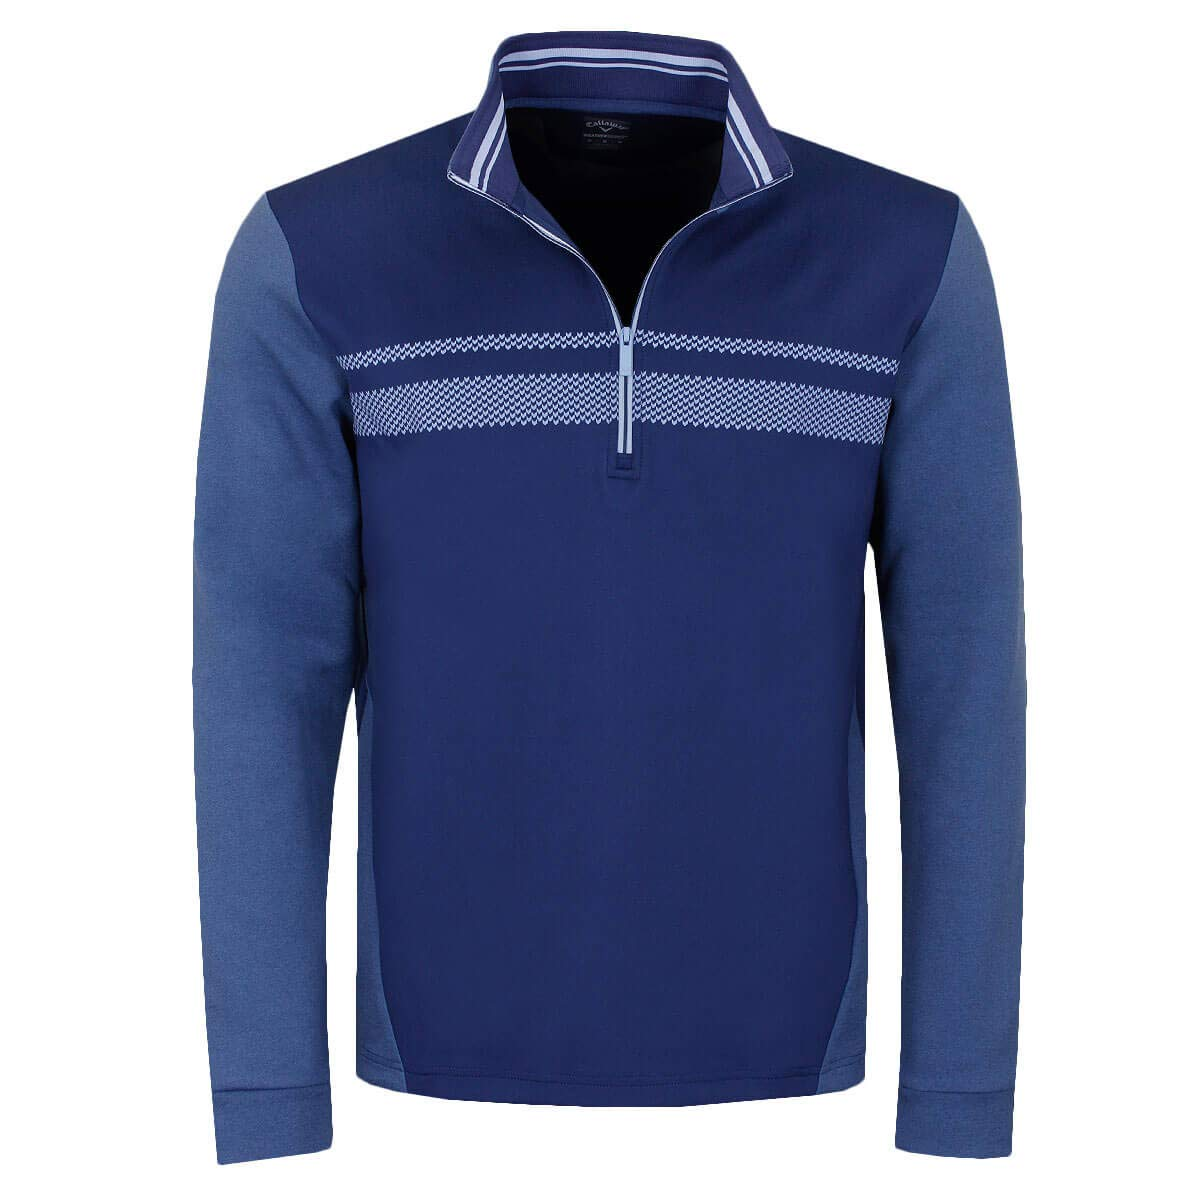 Callaway Golf 2019 Mens 1/4 Zip High Gauge Fleece Thermal Stretch Golf Pullover Medieval Blue Small by Callaway